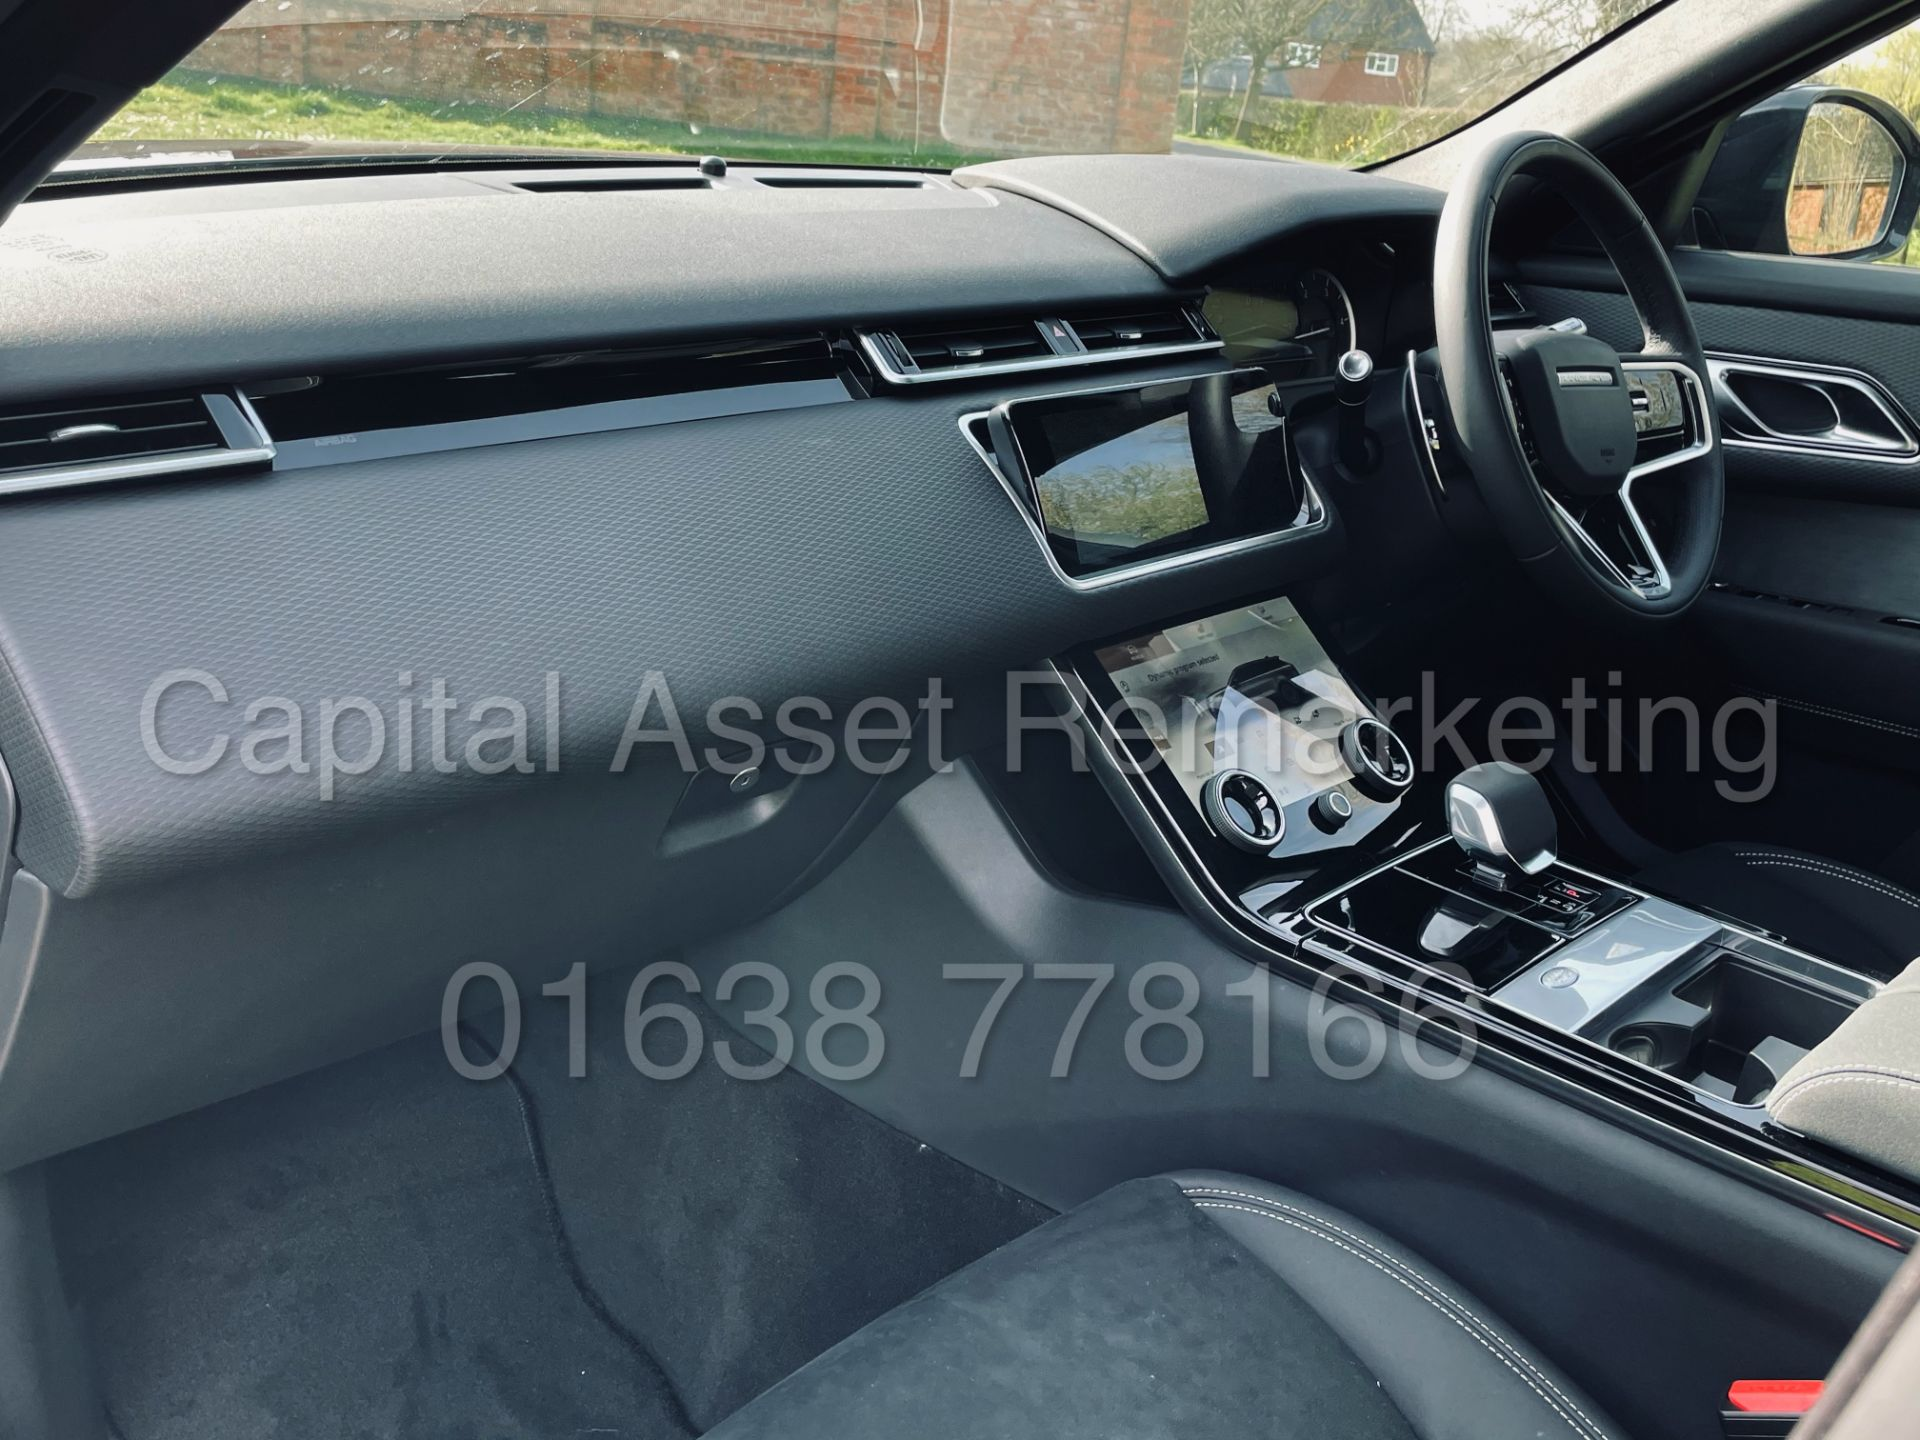 (On Sale) RANGE ROVER VELAR *R-DYNAMIC* SUV (2021) *8 SPEED AUTO - LEATHER* (DELIVERY MILES) - Image 21 of 50